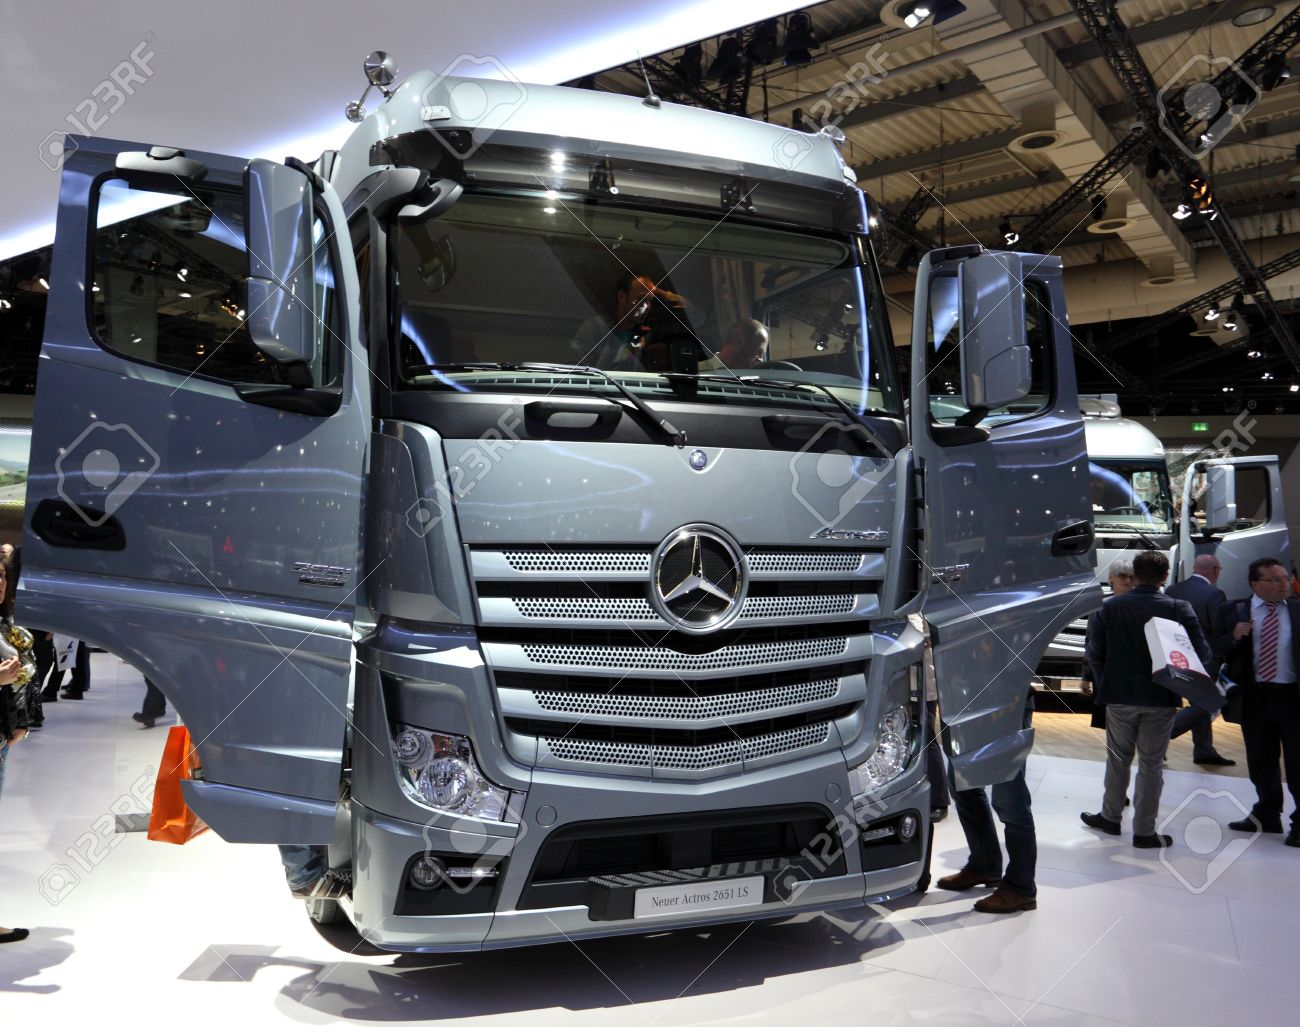 hannover - sep 20: new mercedes benz actros 2651 ls truck at